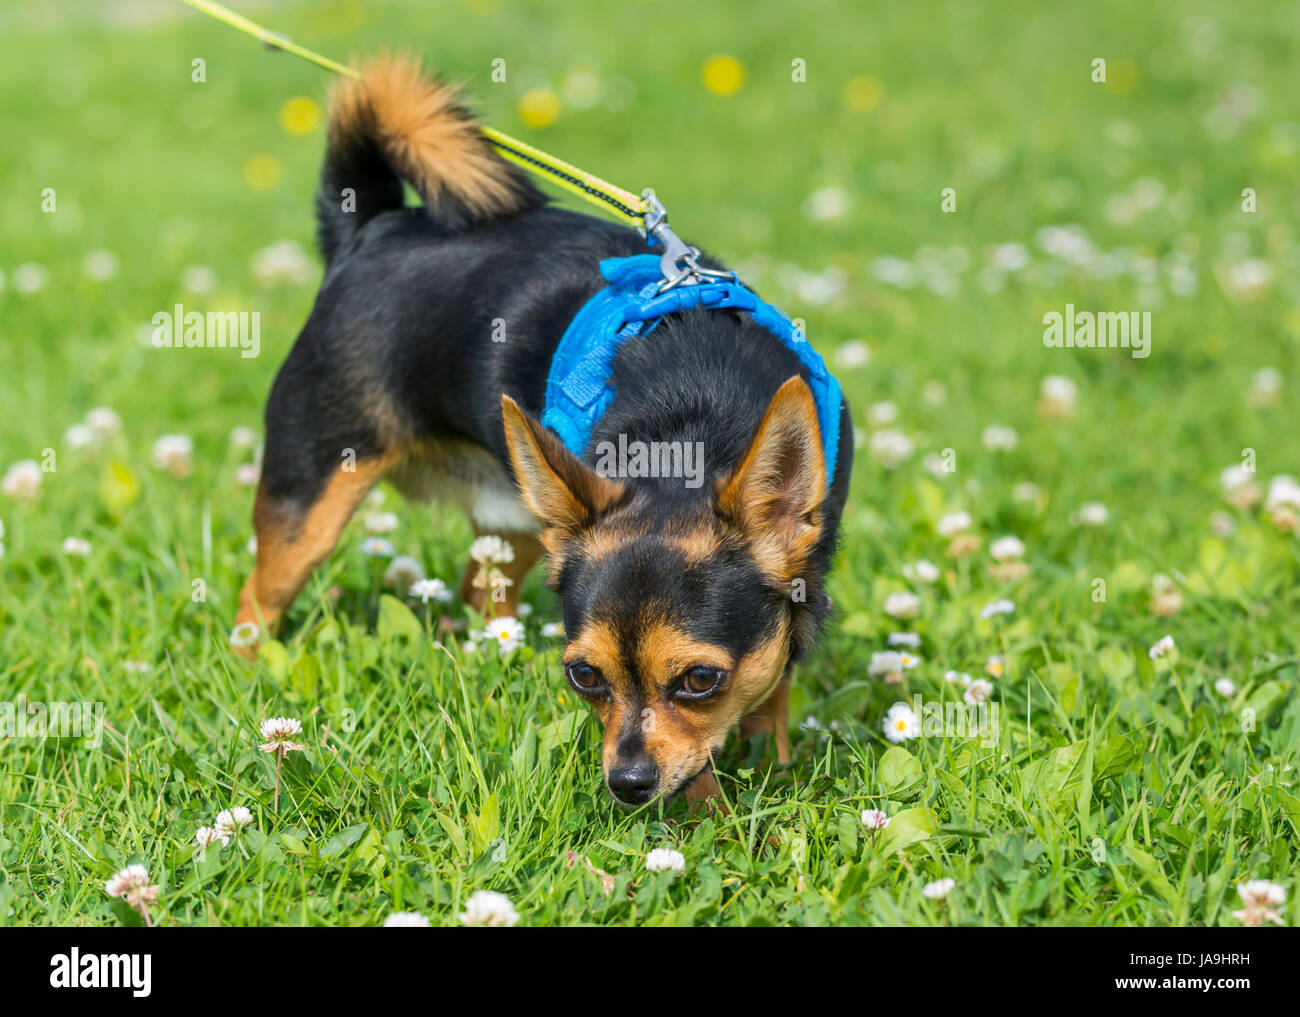 Chihuahua dog. Purebred Chihuahua dog standing on grass. - Stock Image